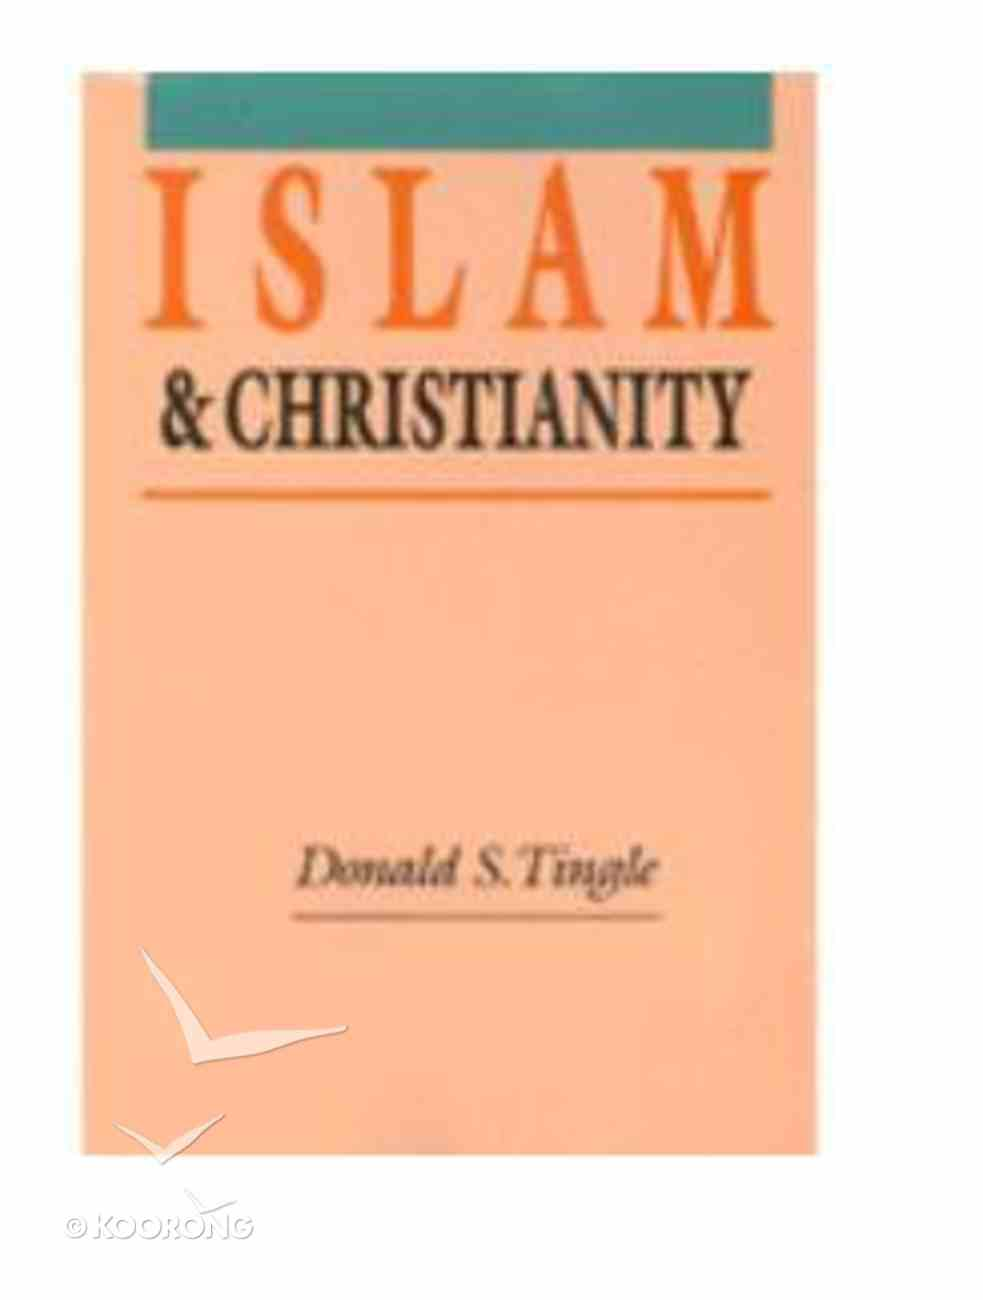 Islam & Christianity (5 Pack) Booklet